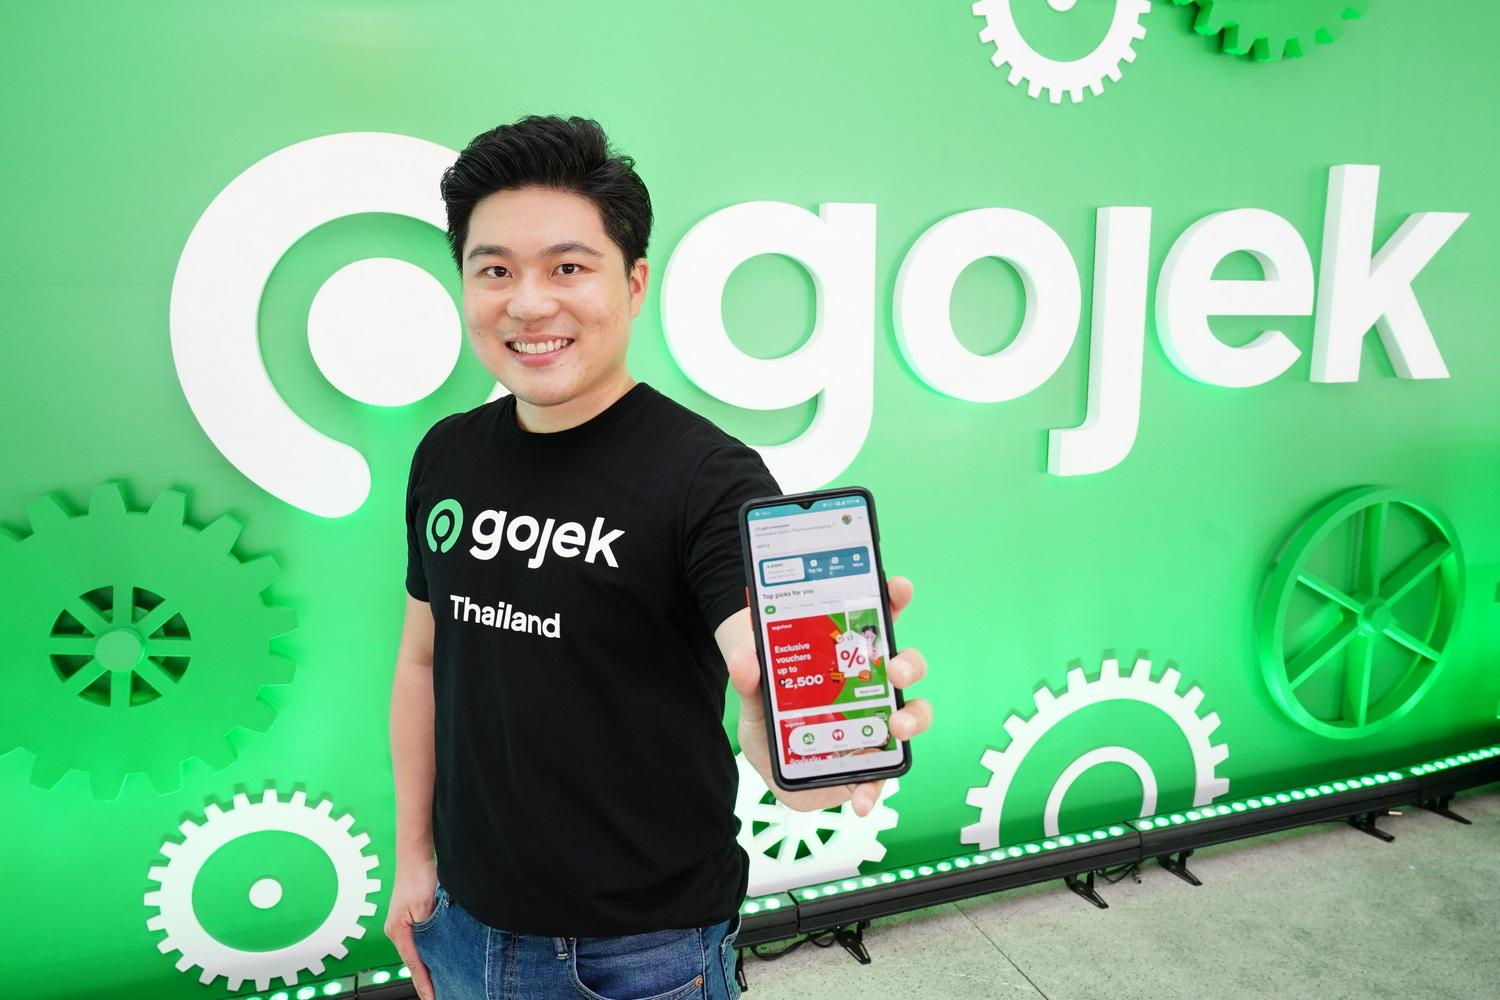 Mr Pinya says the Gojek app has a new and improved look and feel, as well as multiple feature upgrades.